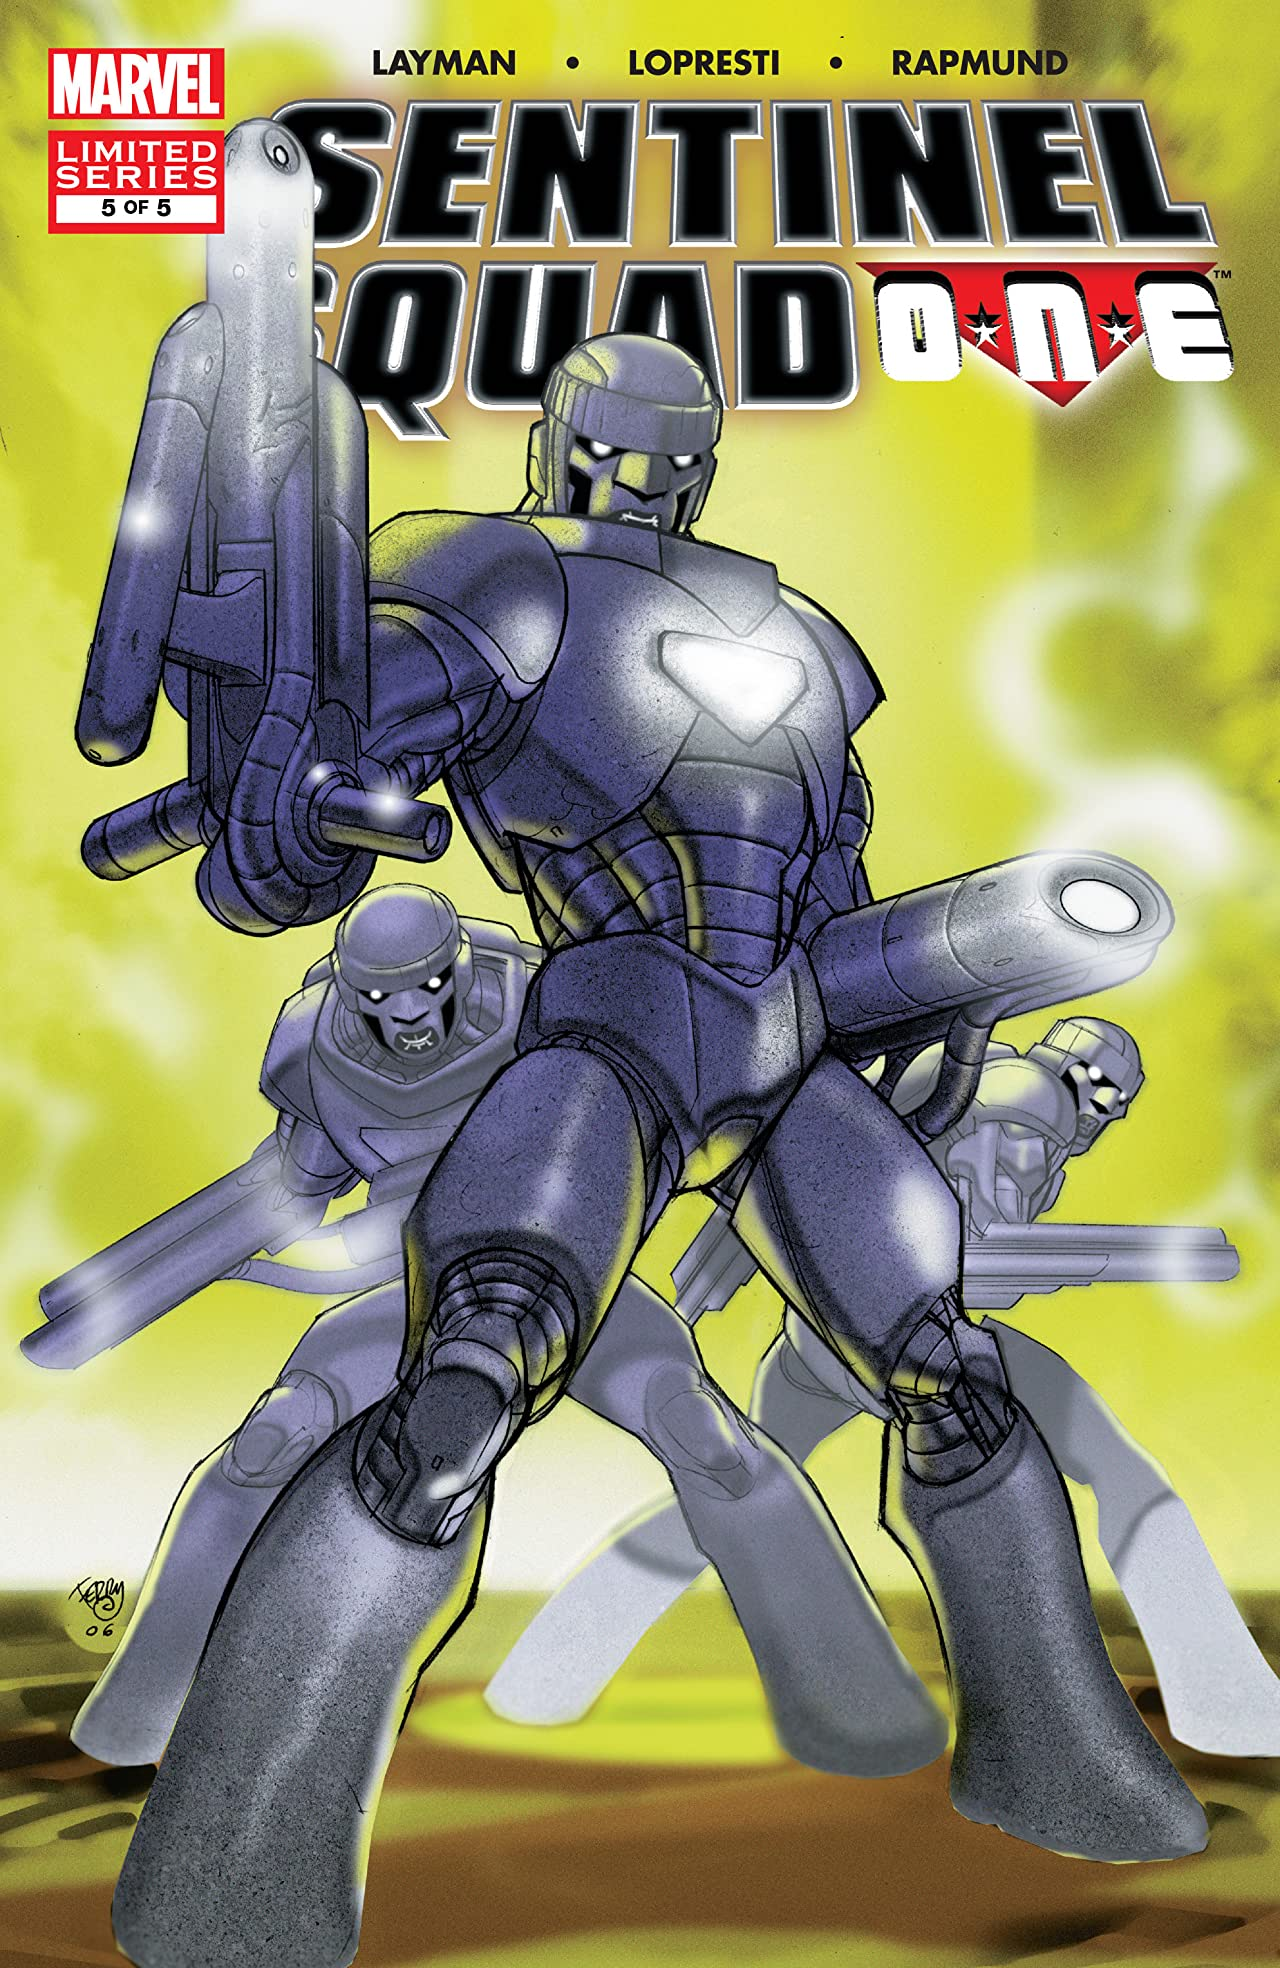 Sentinel Squad One (2006) #5 (of 5)